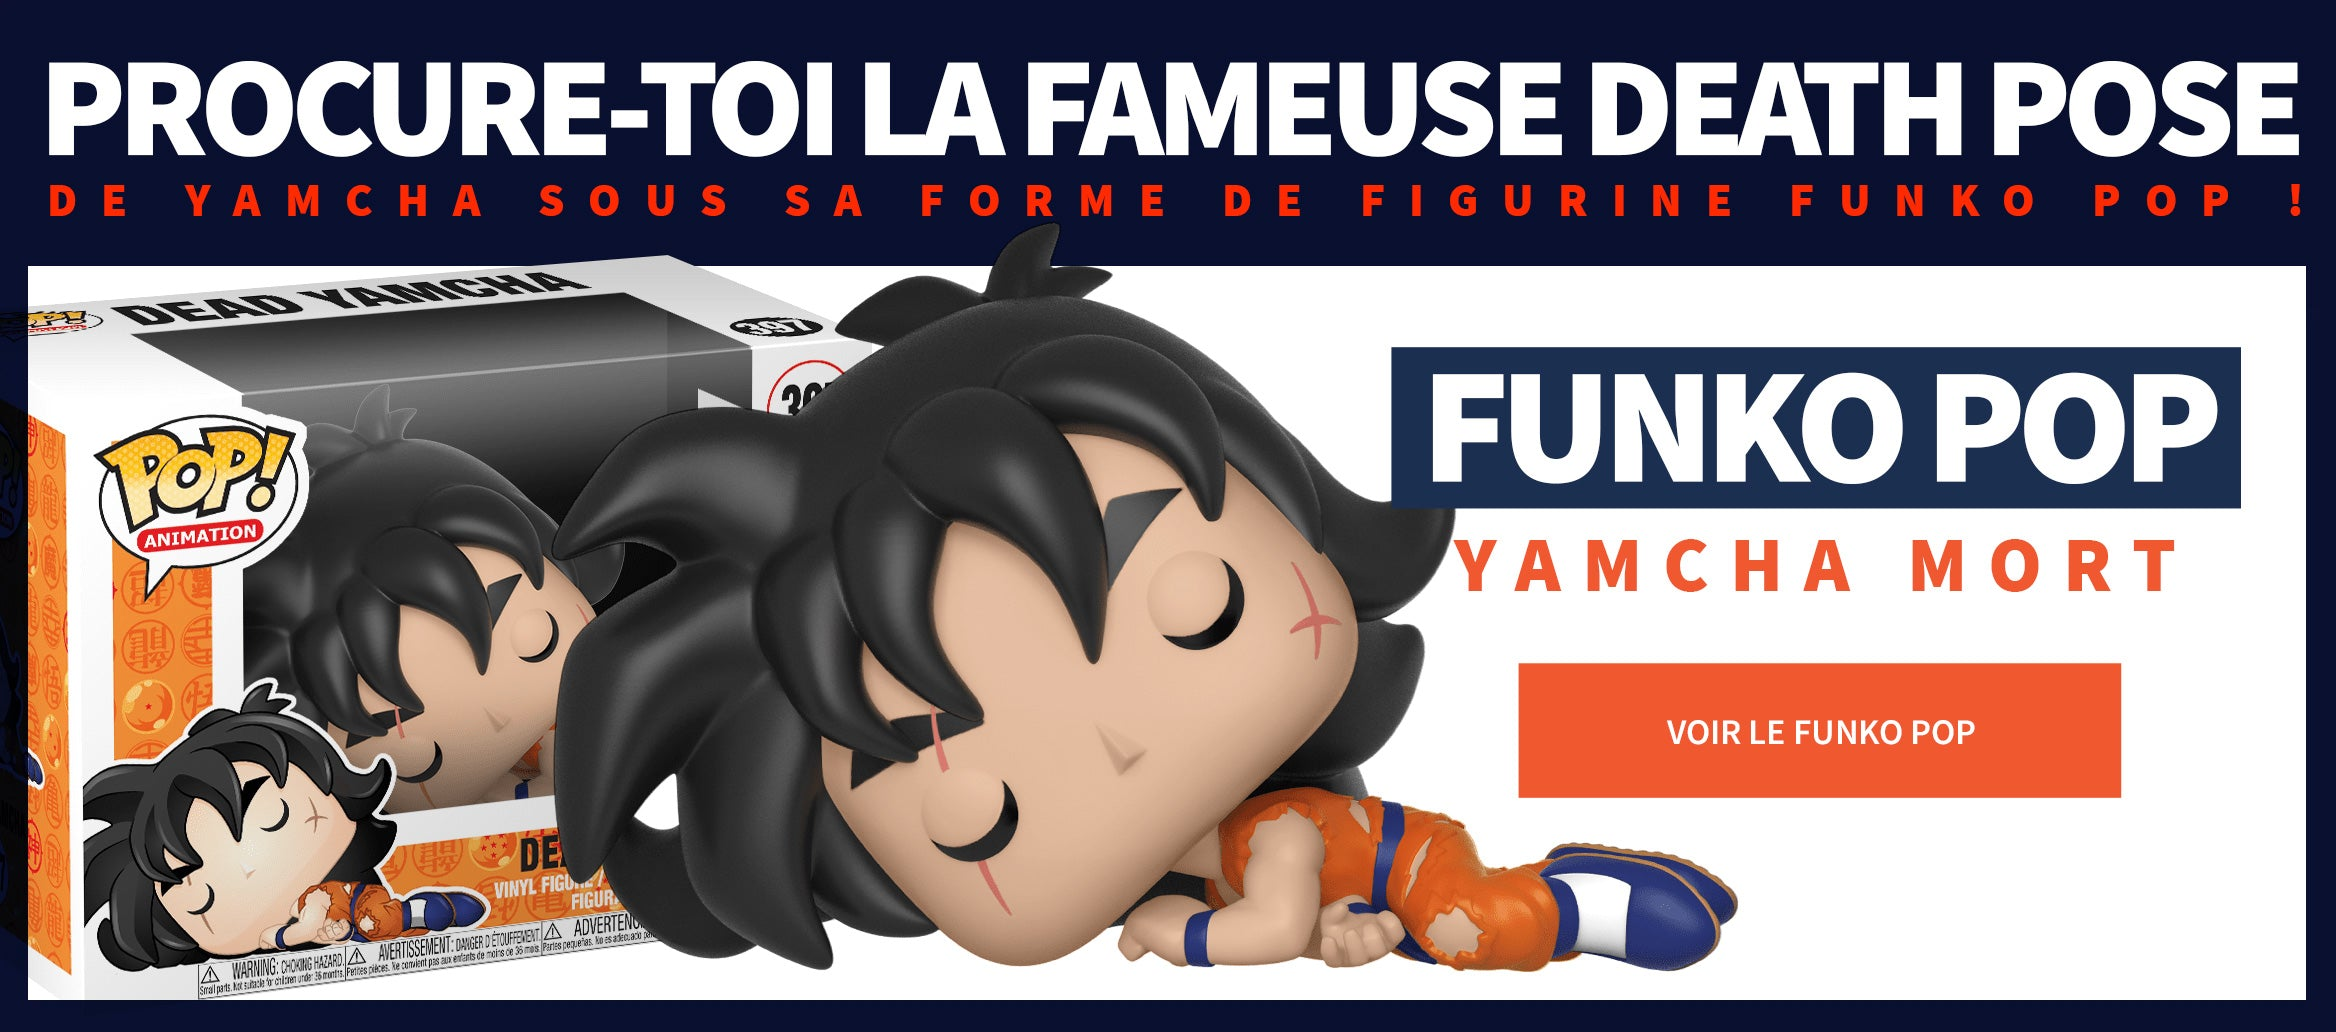 Figurine Pop Yamcha